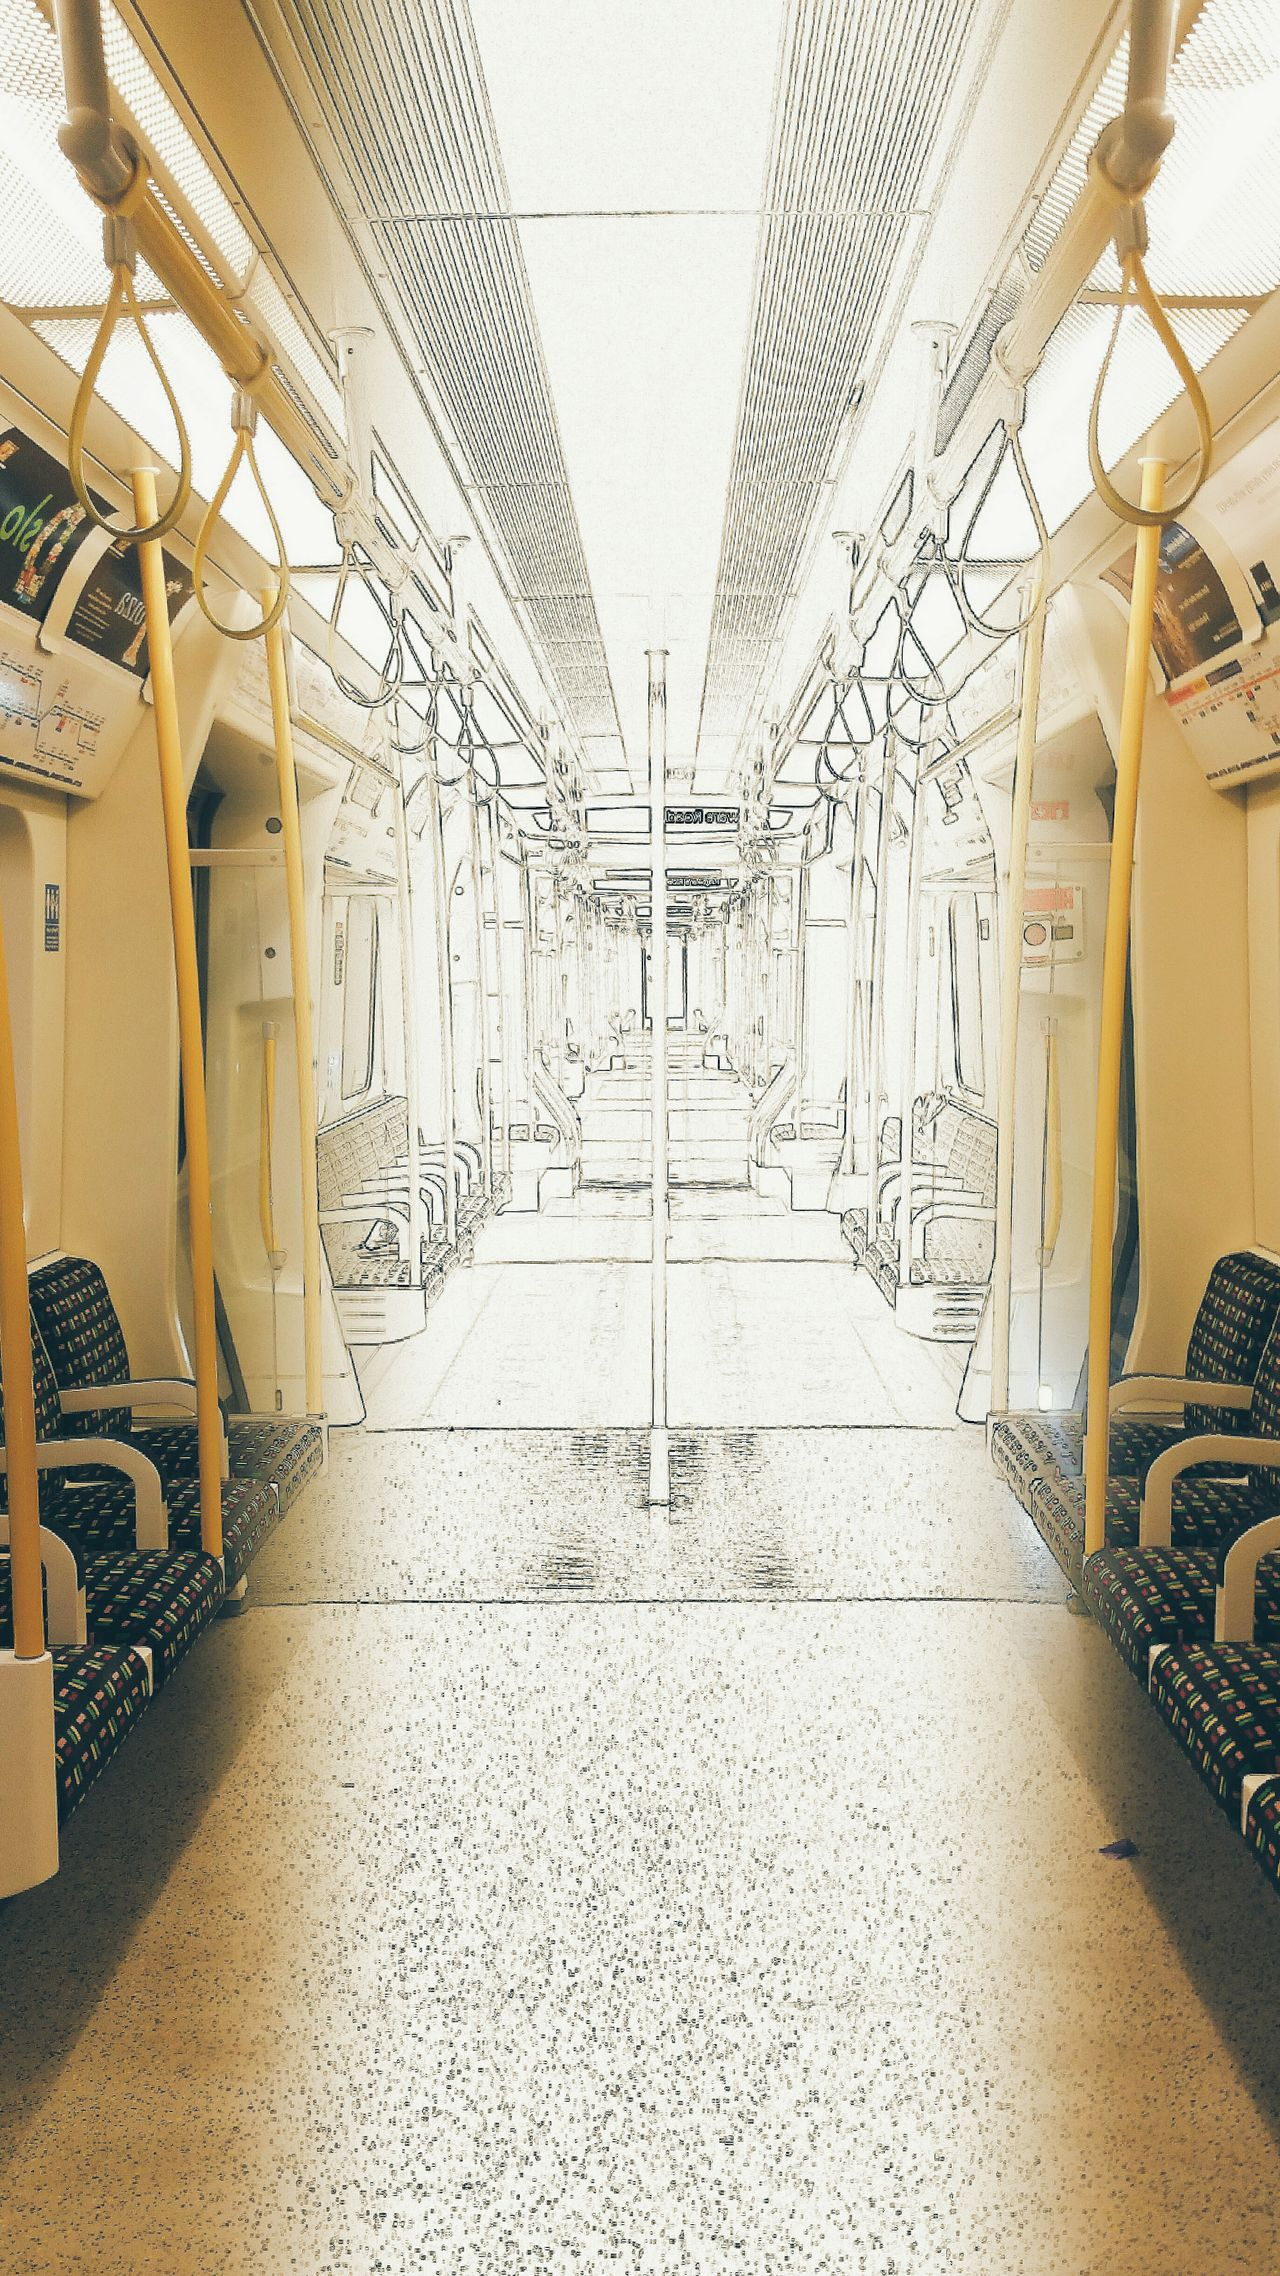 London Lifestyle Public Transportation Commuting Colour And Black And White London Underground On The Train Empty Train Inside A Train Yellow